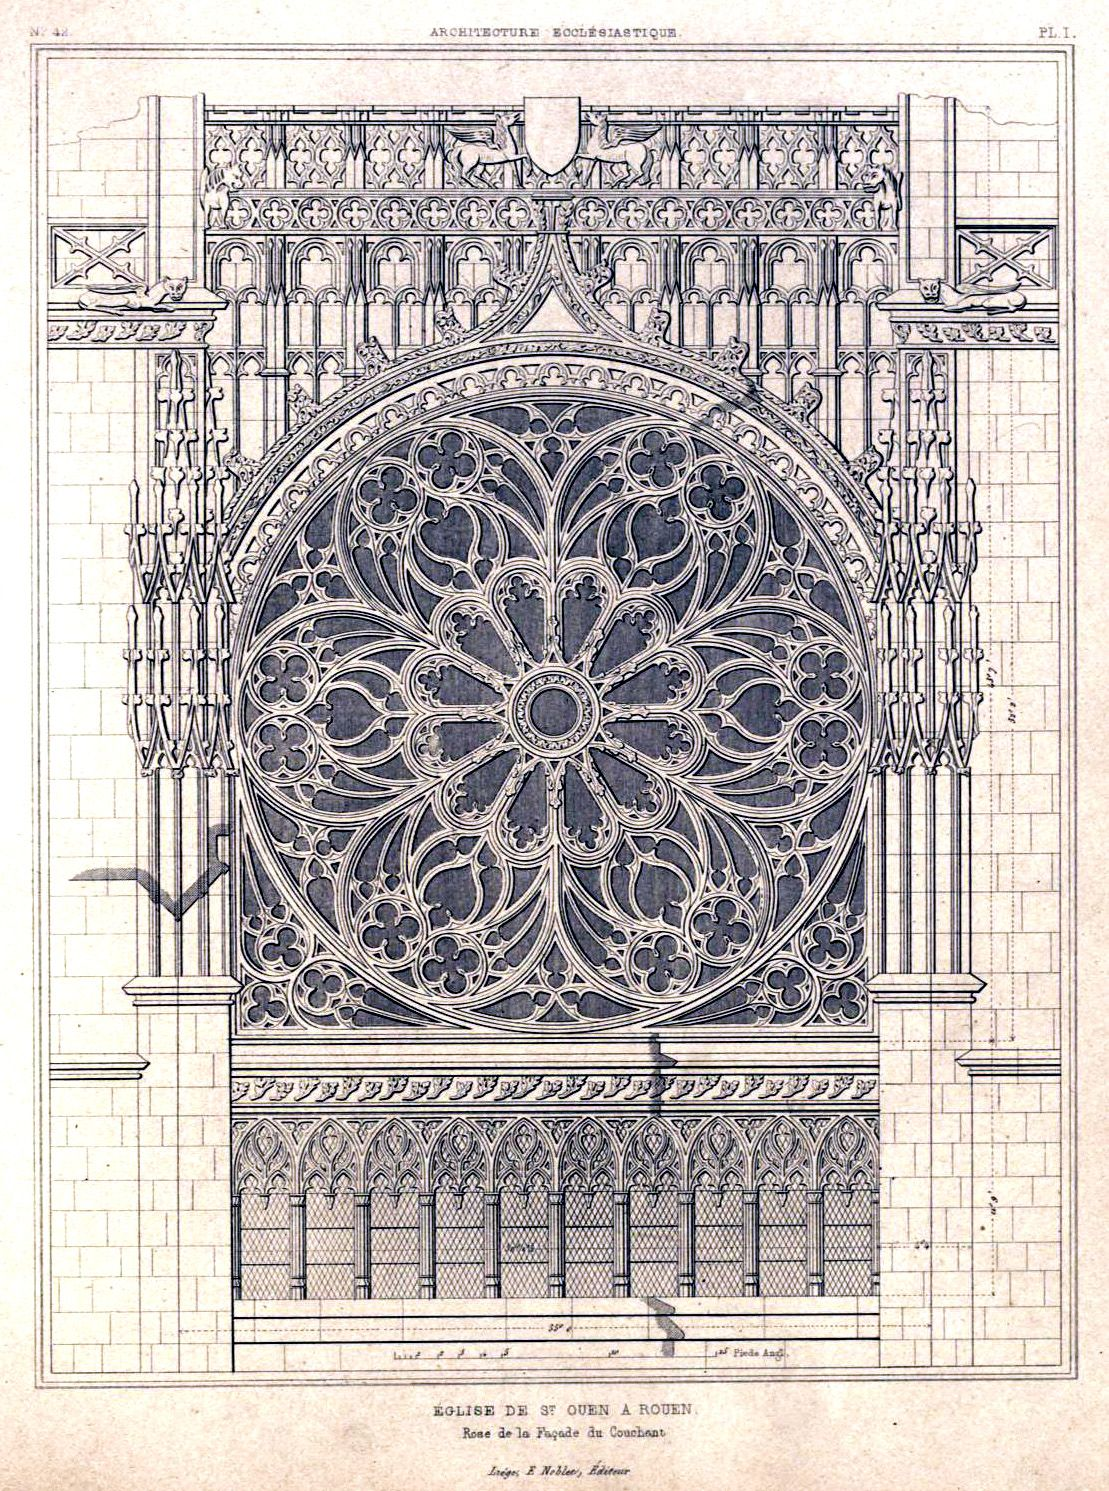 Architectural detail of the Church of St. Ouen, Rouen